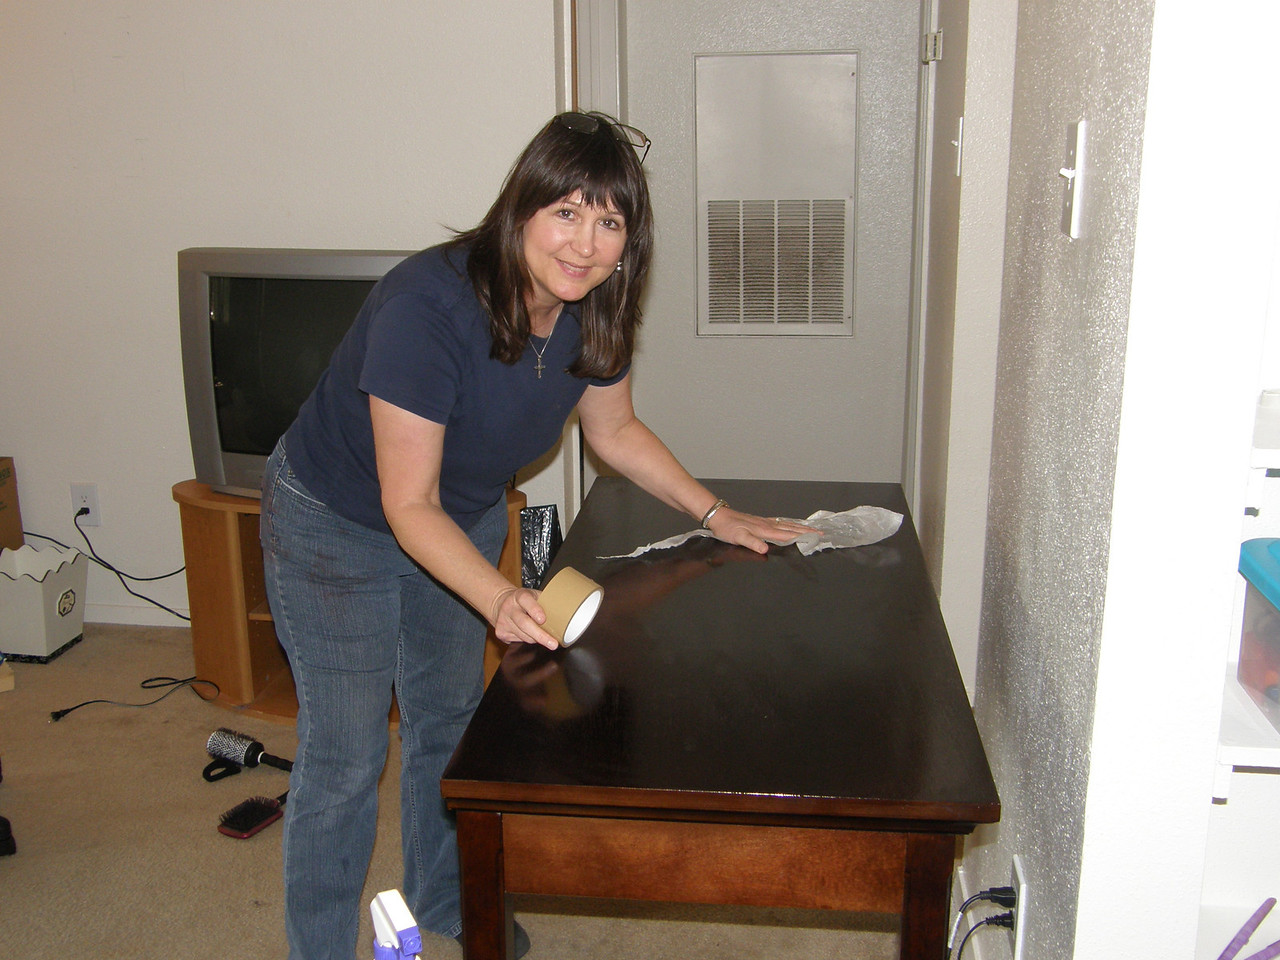 Mary Jane is still polishing that table.  Look at it shine!  Awesome.